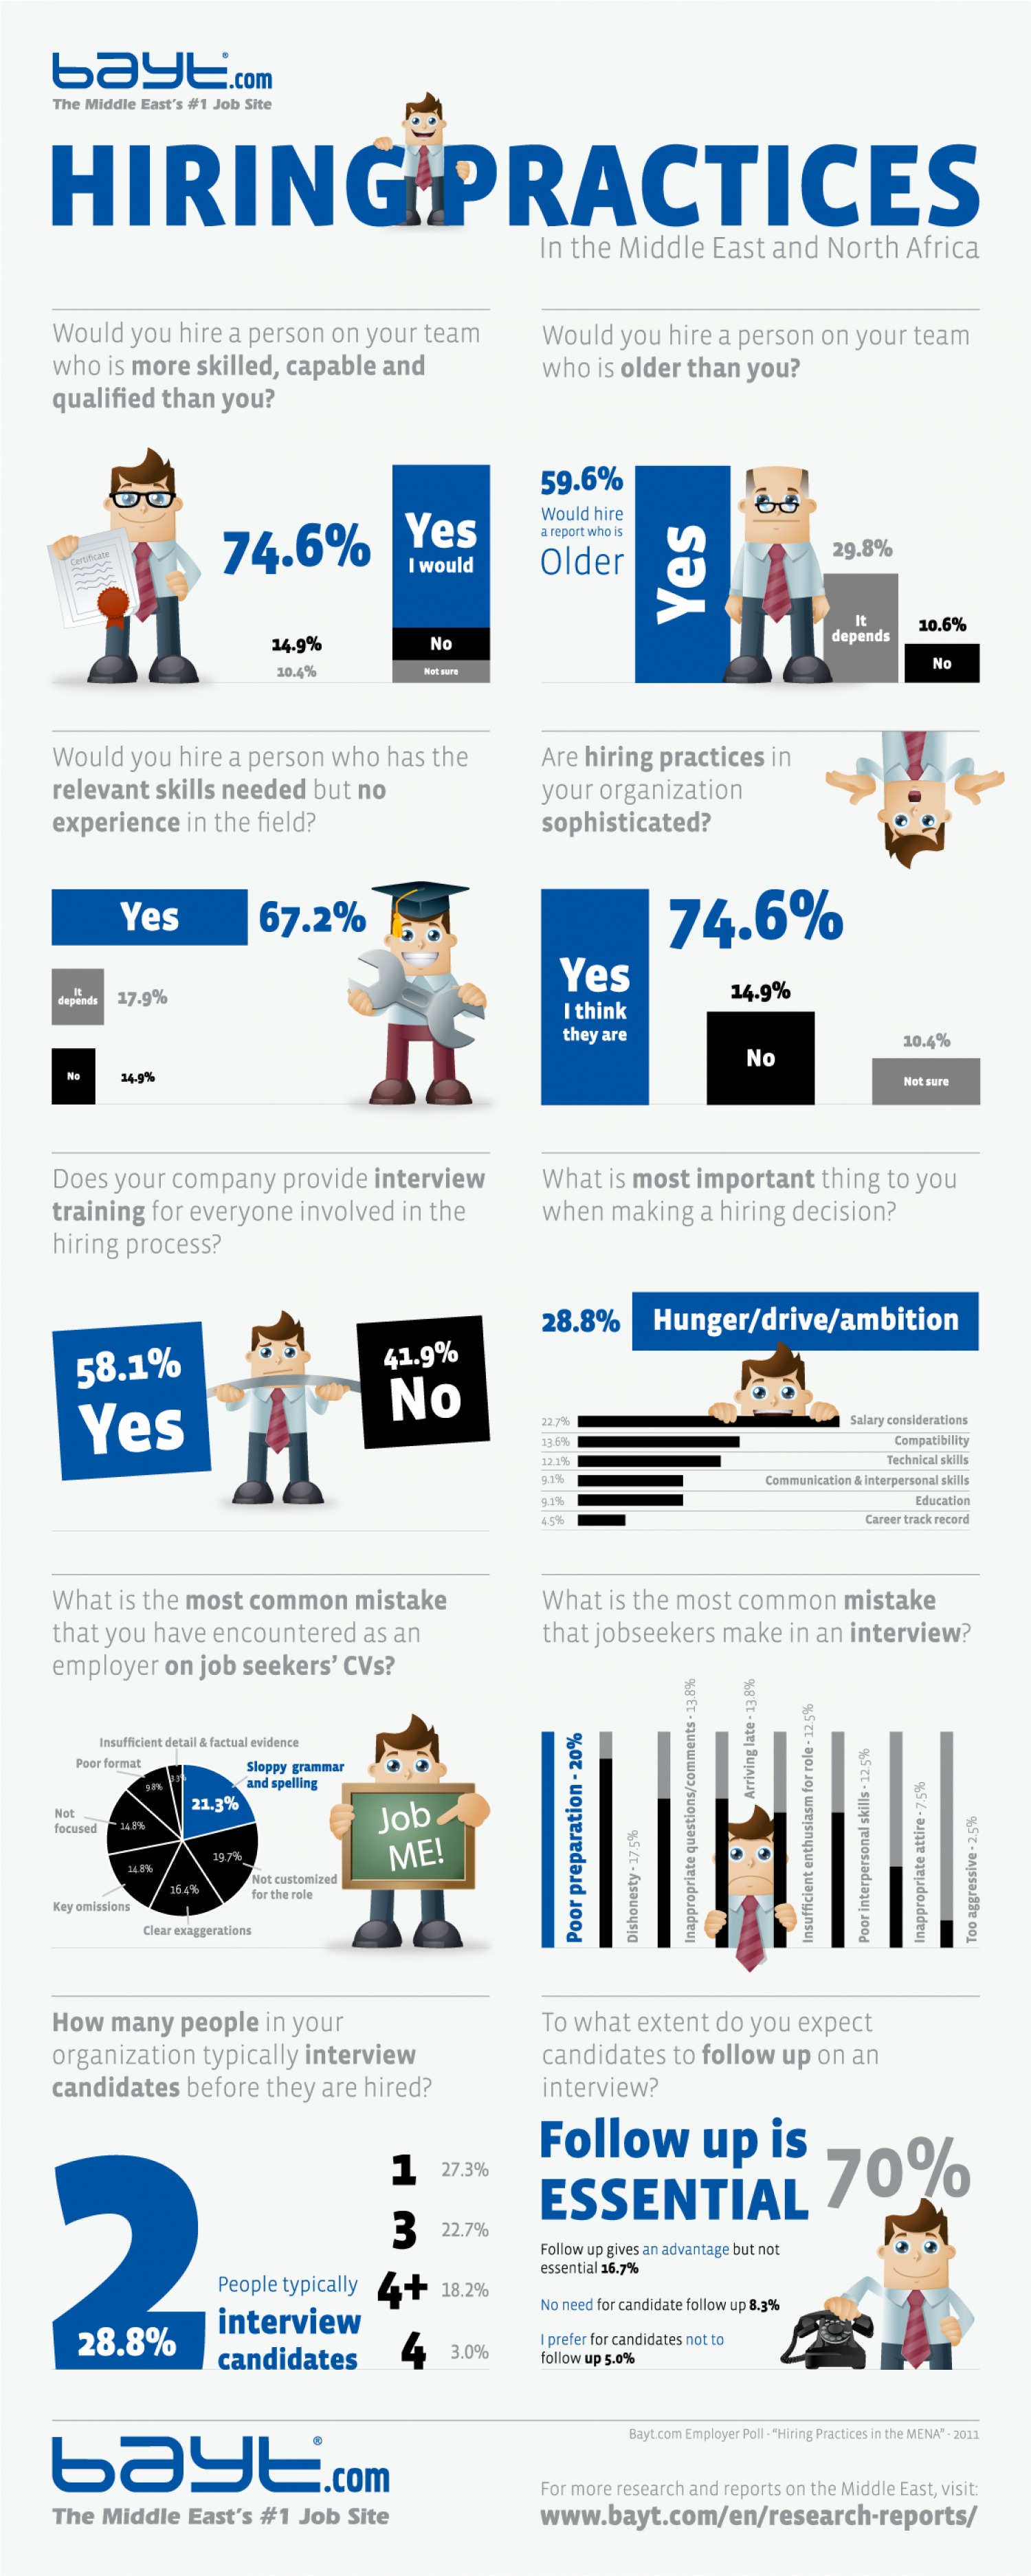 Infographic: What are the Hiring Practices in the Middle East and North Africa? Infographic